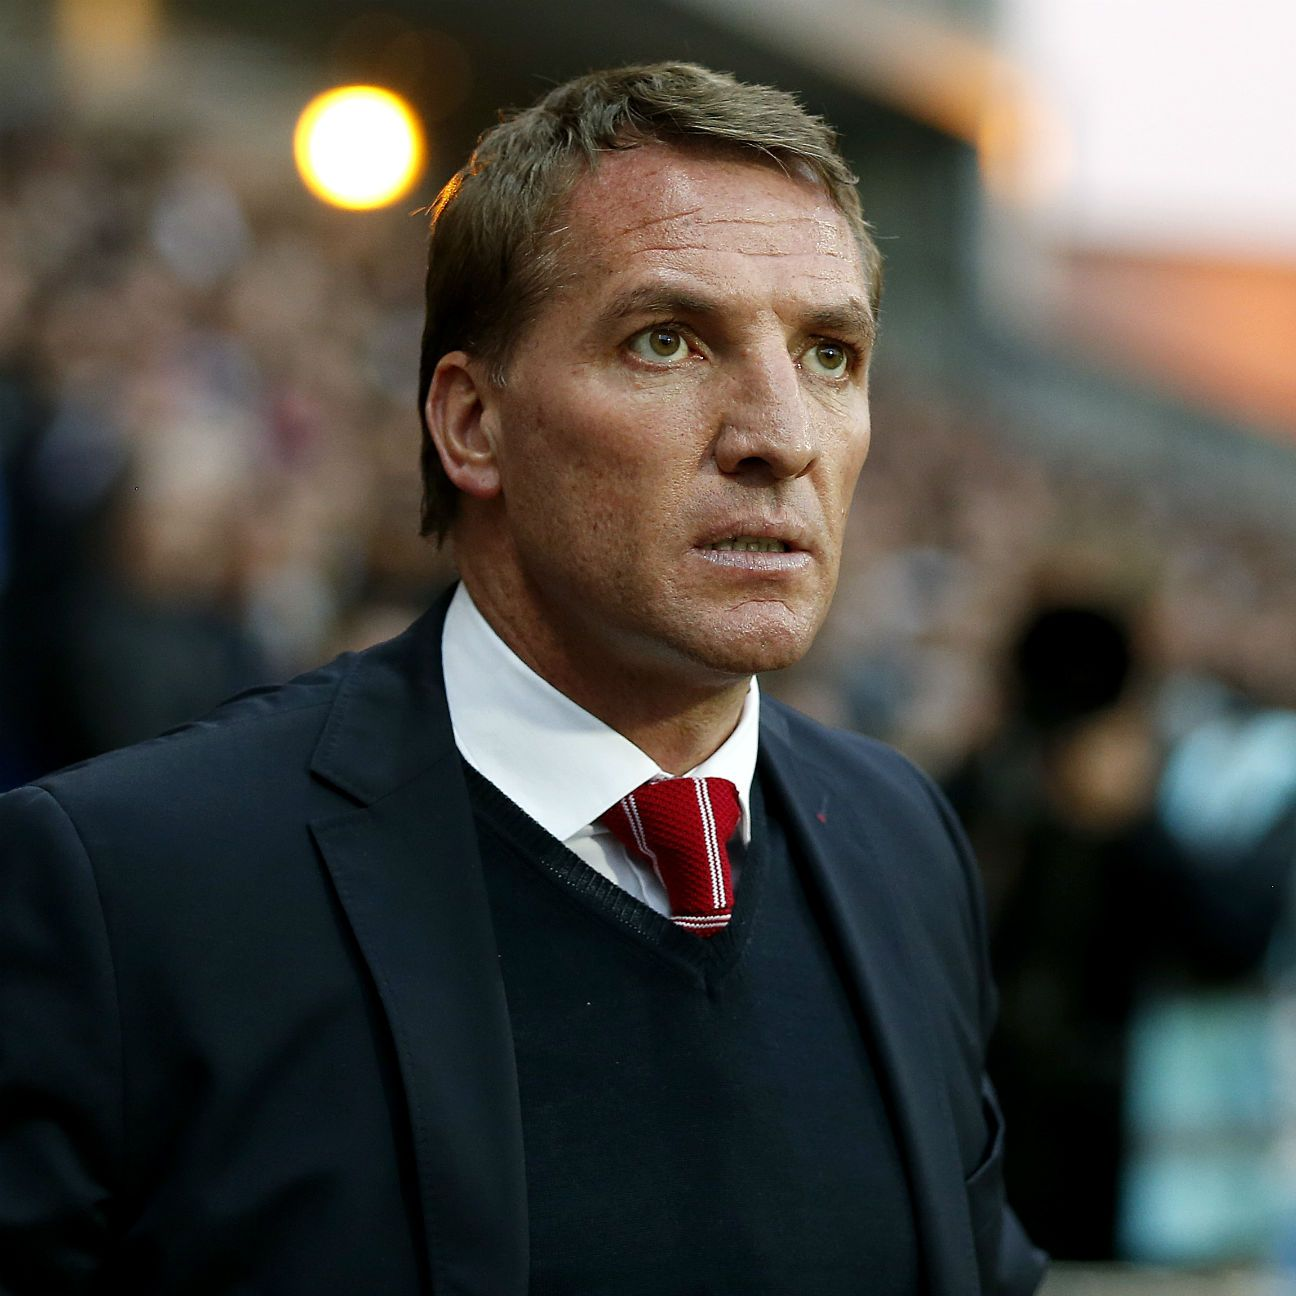 Liverpool boss Brendan Rodgers opted to revert back to a 4-3-3 that produced mixed results.